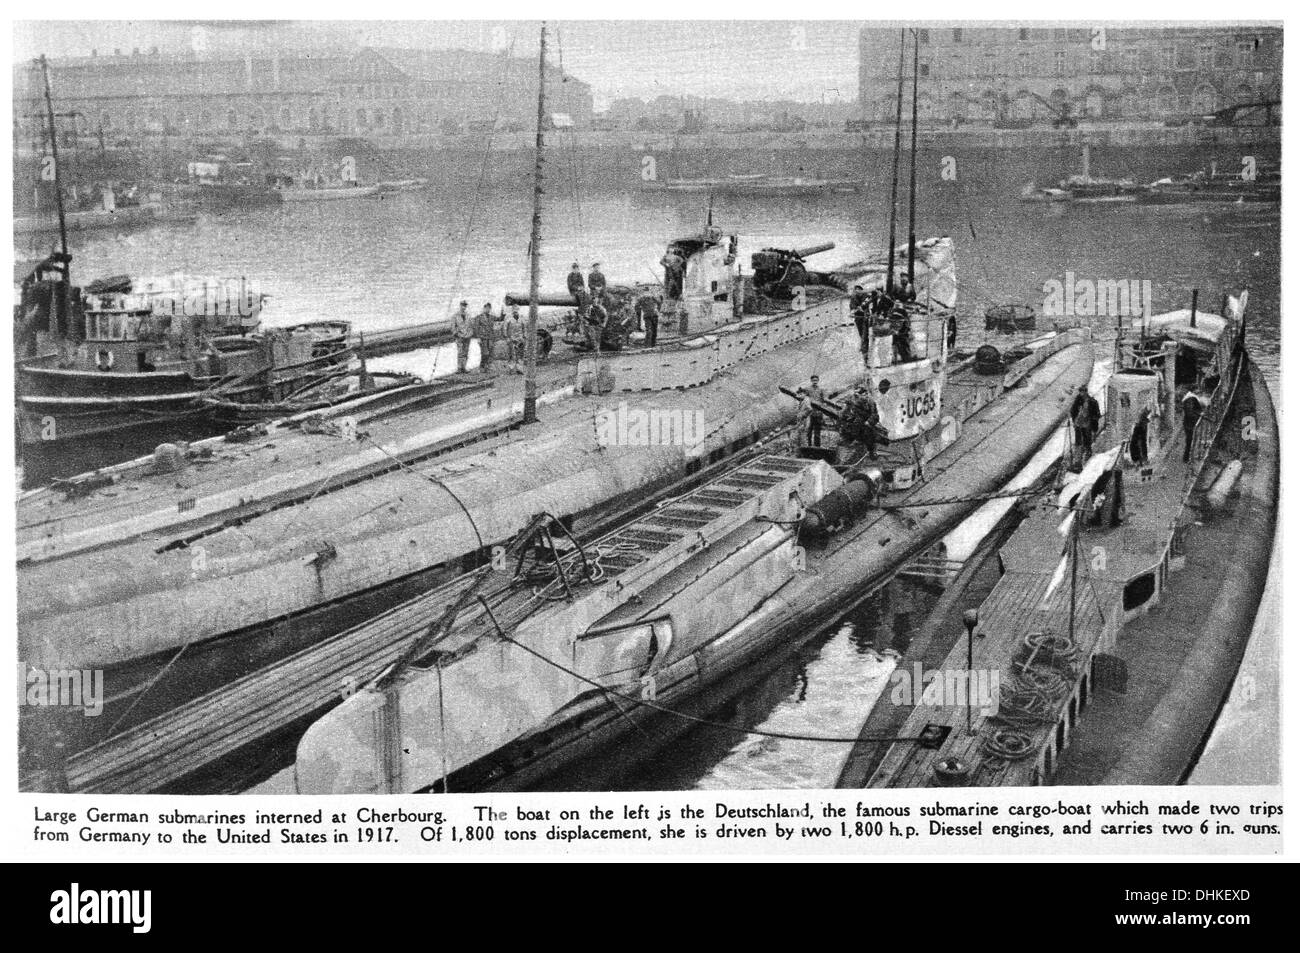 Large German submarines interned at Cherbourg. The boat on the left is the Deutschland, the famous submarine cargo boat. - Stock Image